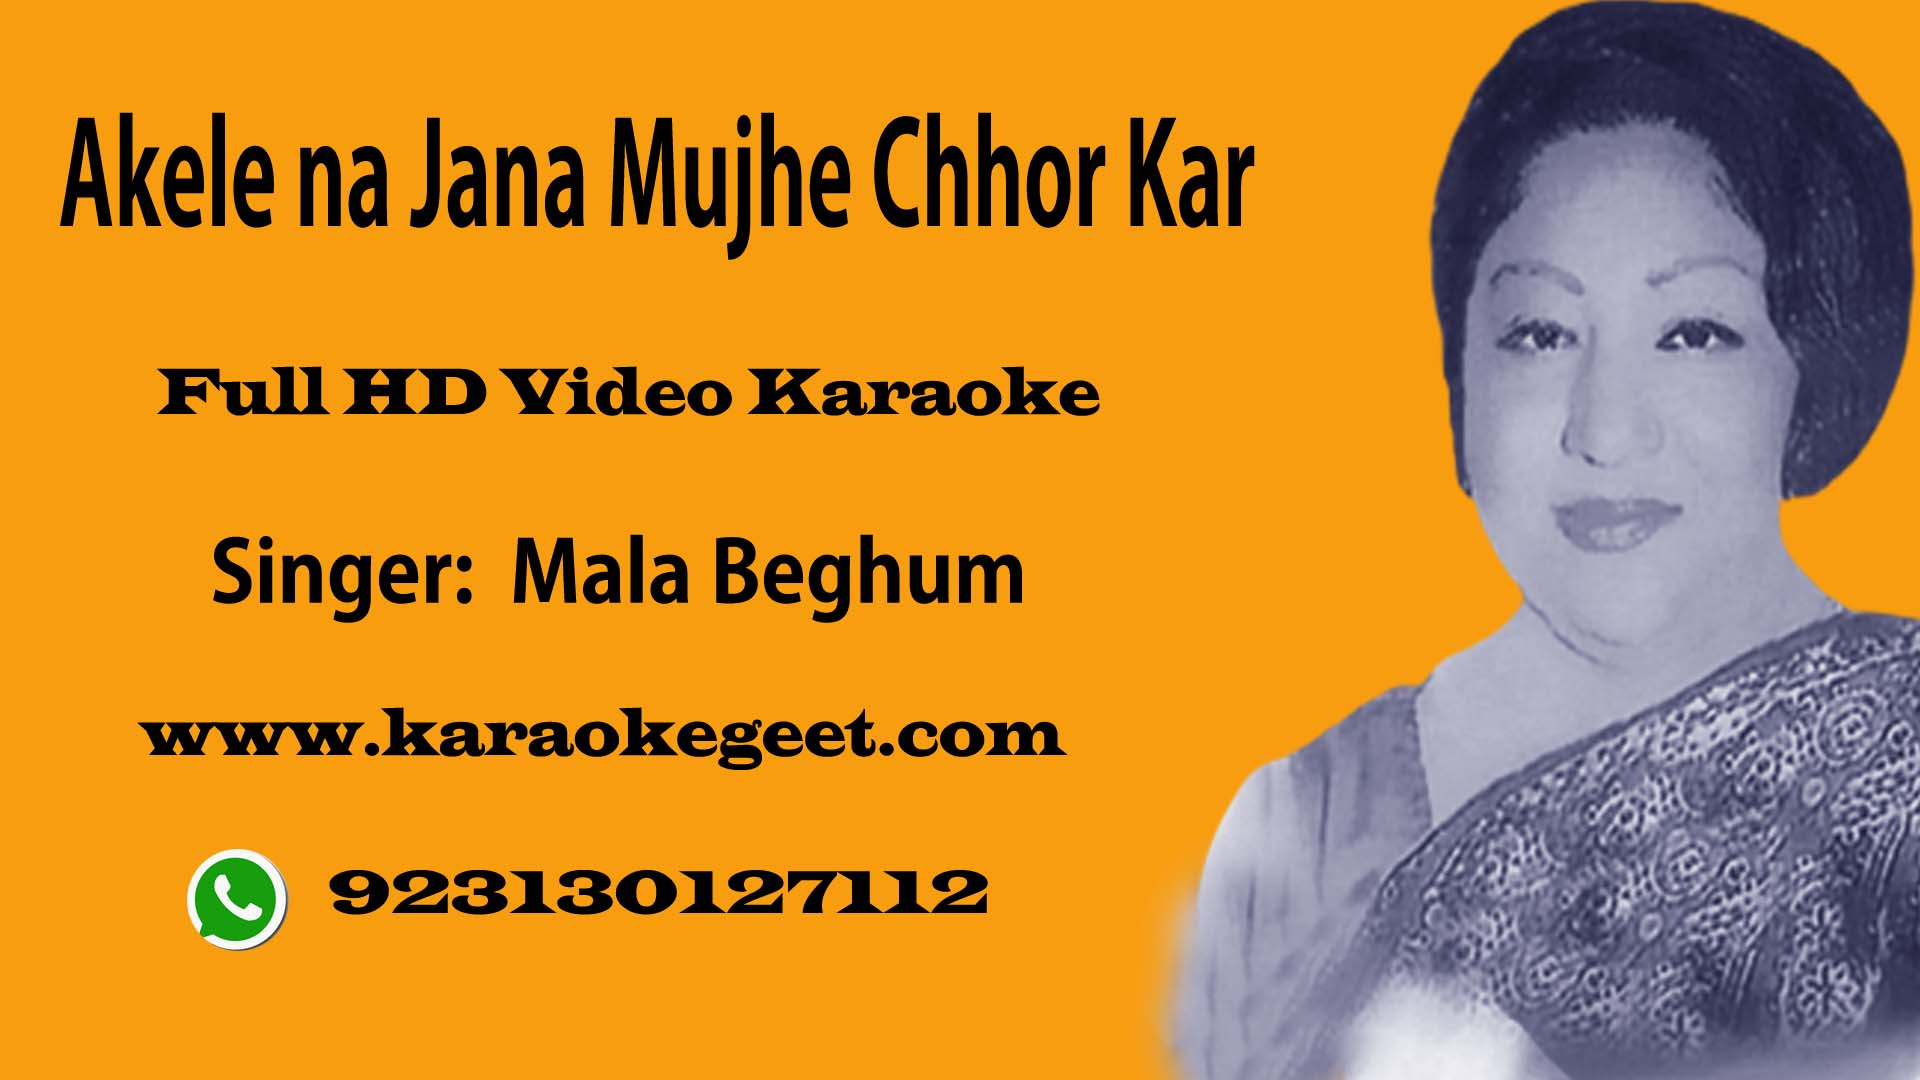 Akele na jana hamain chhor kar yun Cover Video Karaoke